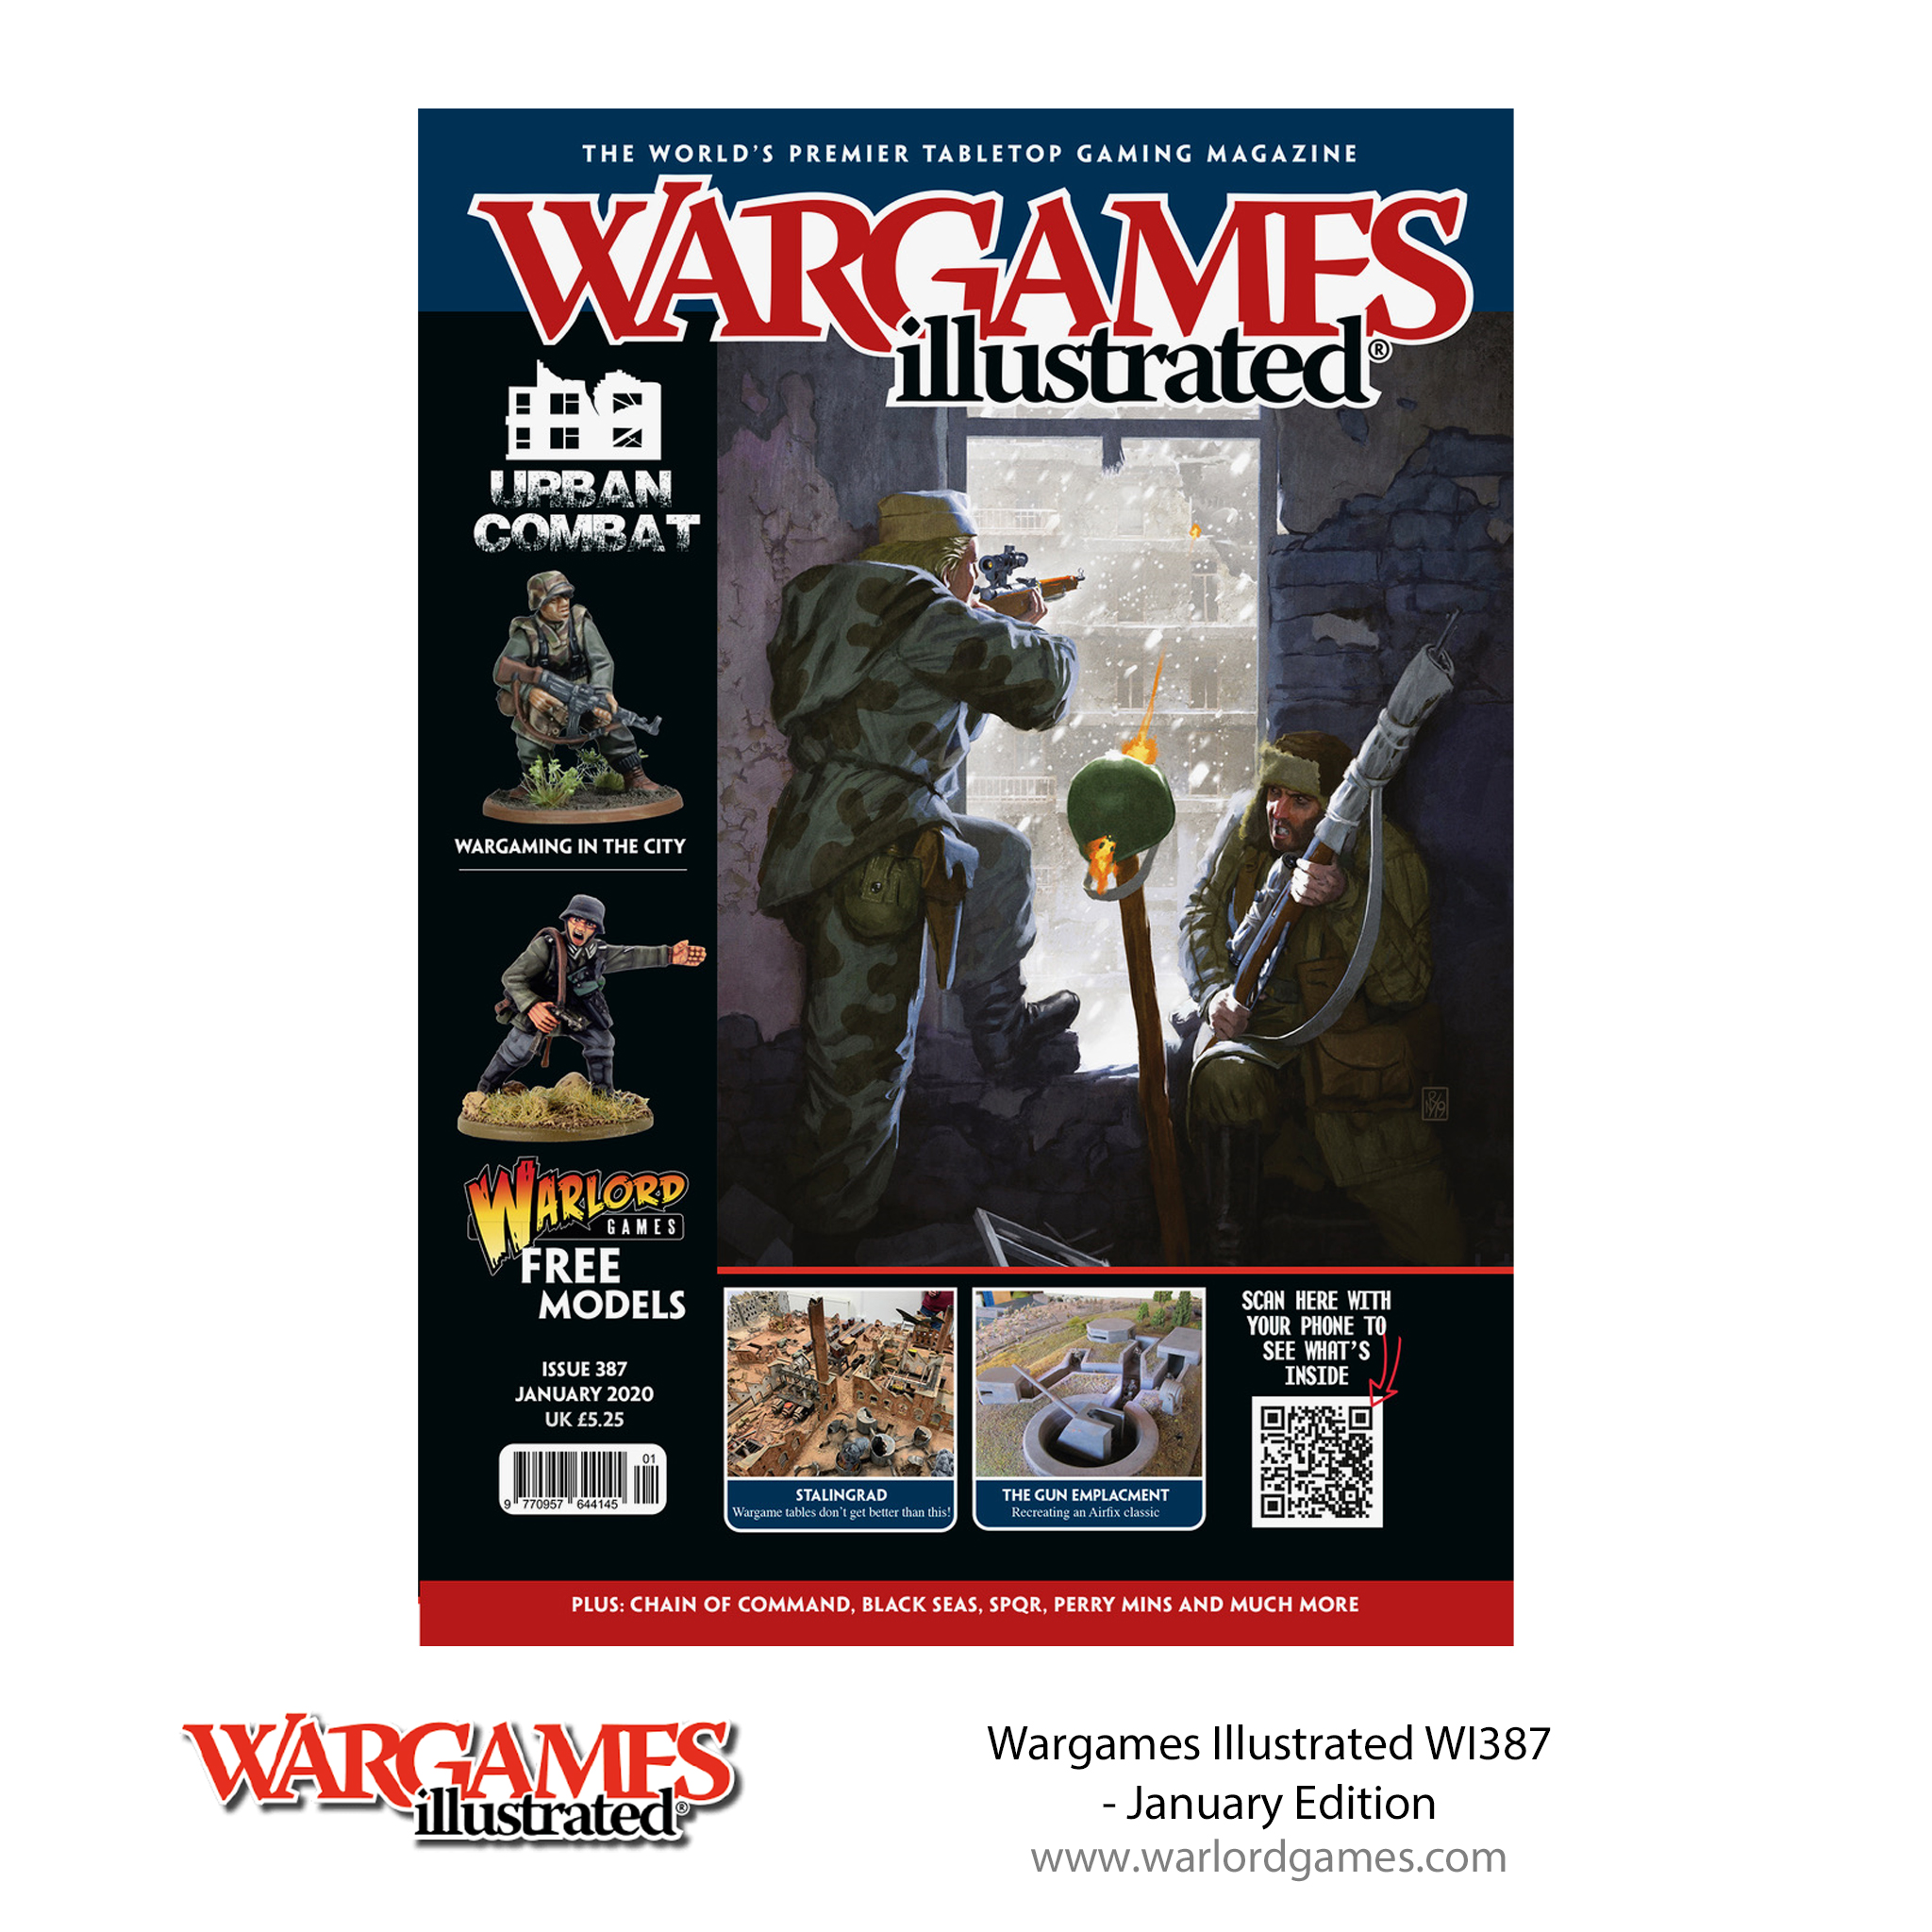 WI387 Wargames Illustrated WI387 January Edition